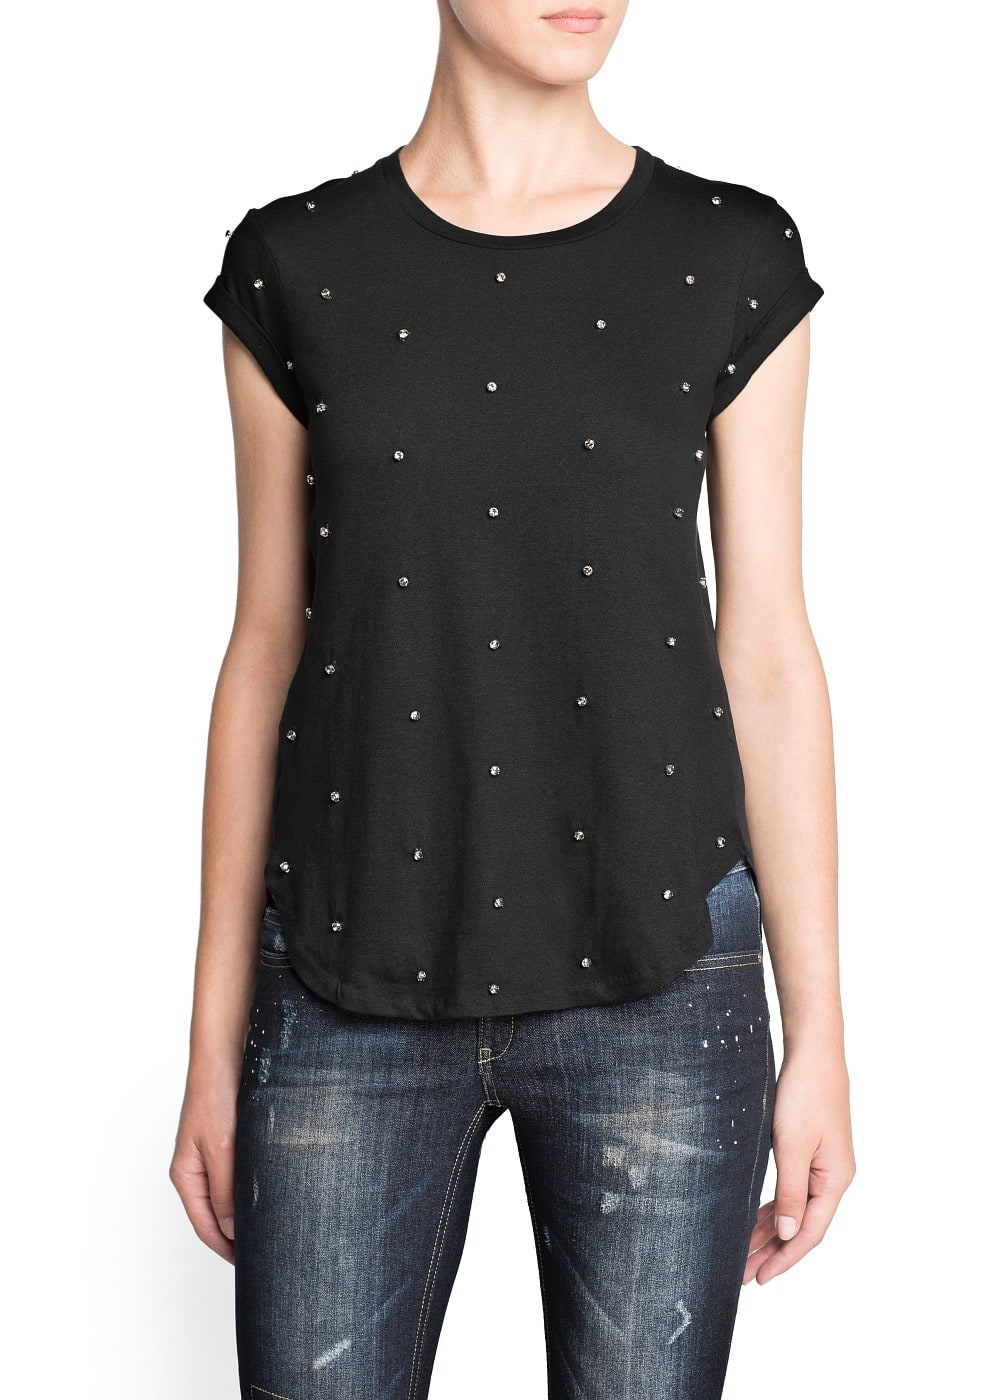 Crystal embellishment cotton t-shirt